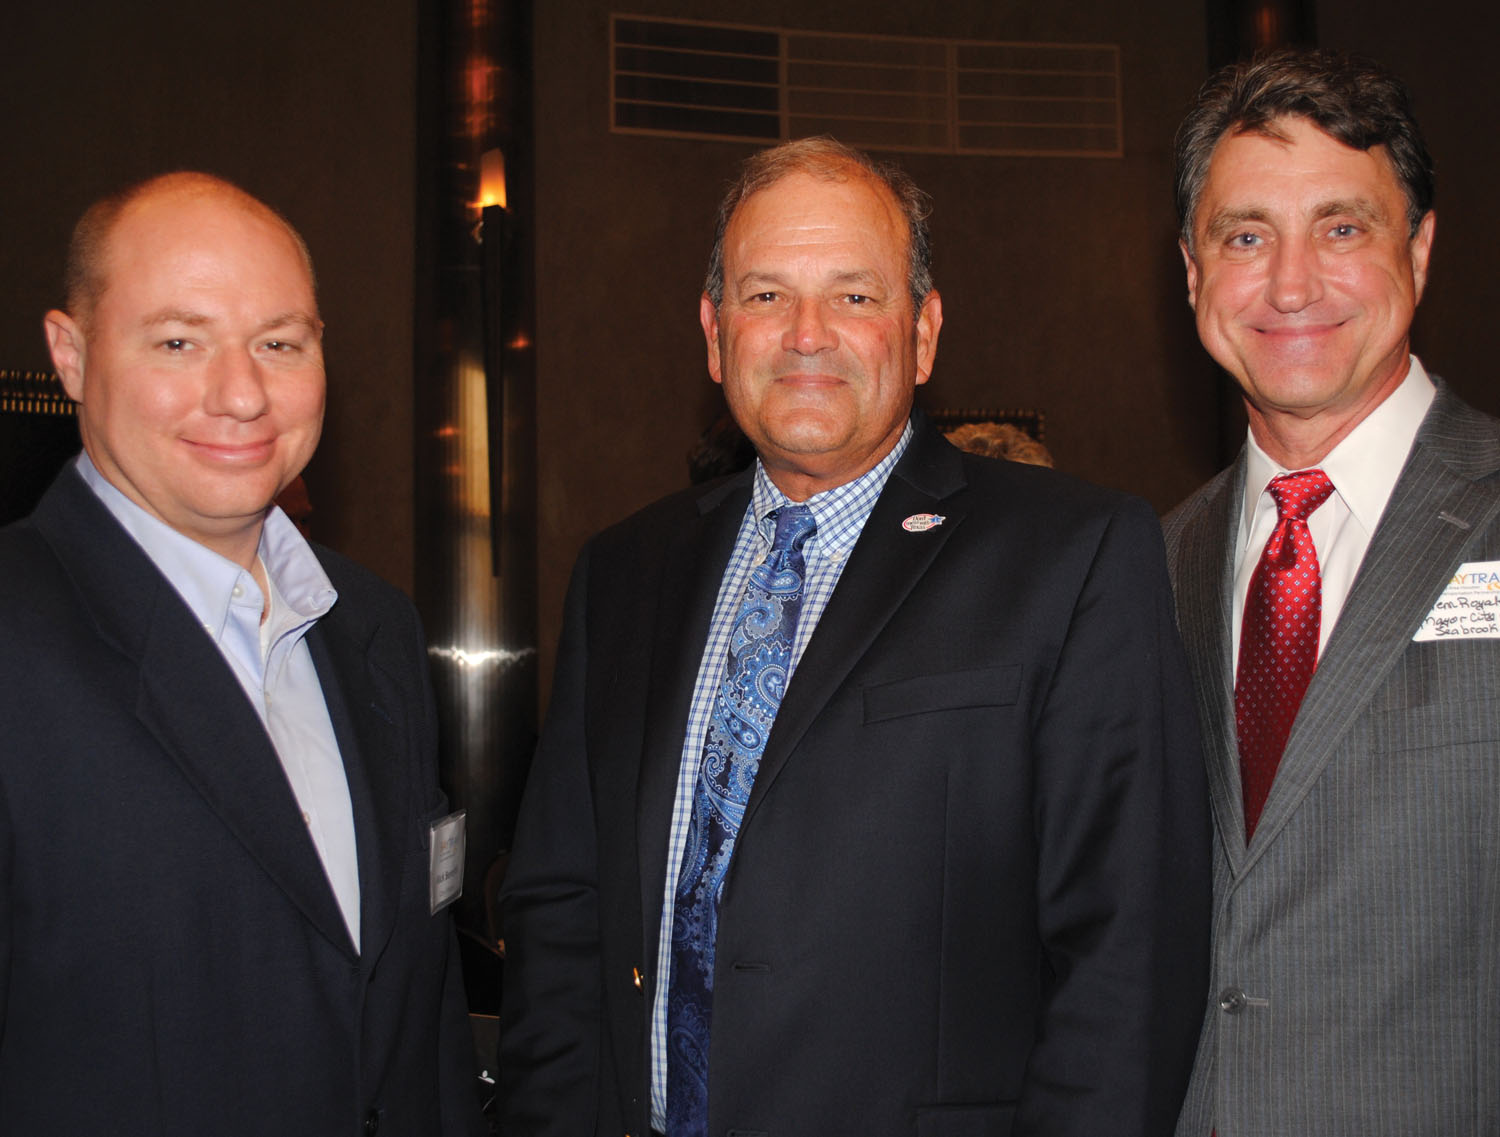 TxDOT Executive Director Lt. Gen. Joe Weber, center, talks with Kemah City Administrator Rick Beverlin, left, and Seabrook Mayor Glenn Royal after addressing the Bay Area Houston Transportation Partnership luncheon at Cullen's Upscale Grille.